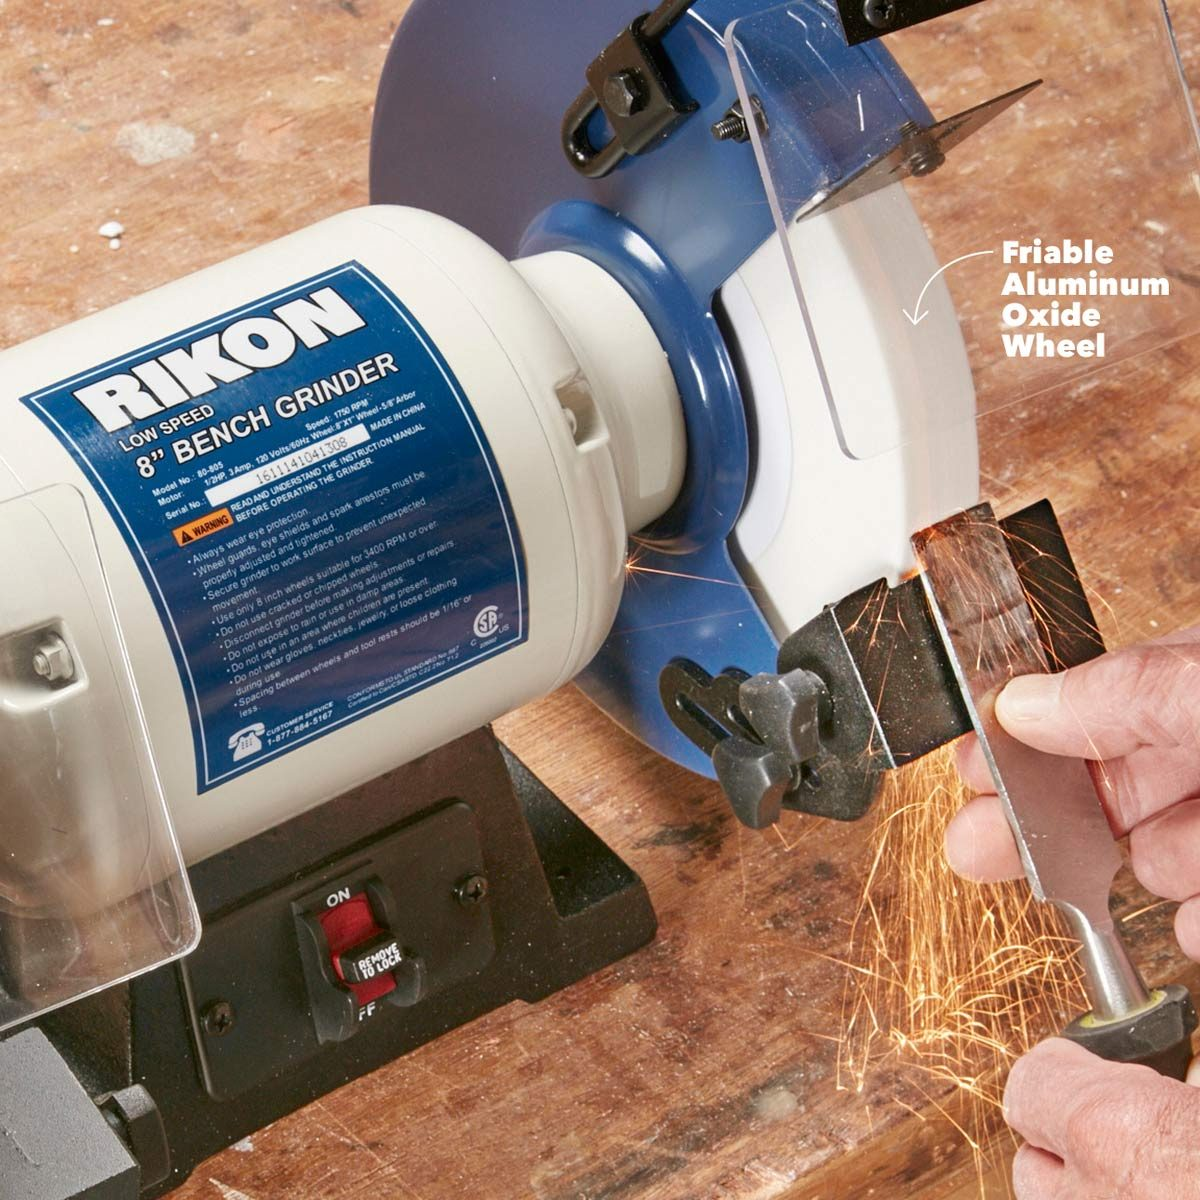 Tremendous Bench Grinder Basics You Need To Know The Family Handyman Pdpeps Interior Chair Design Pdpepsorg